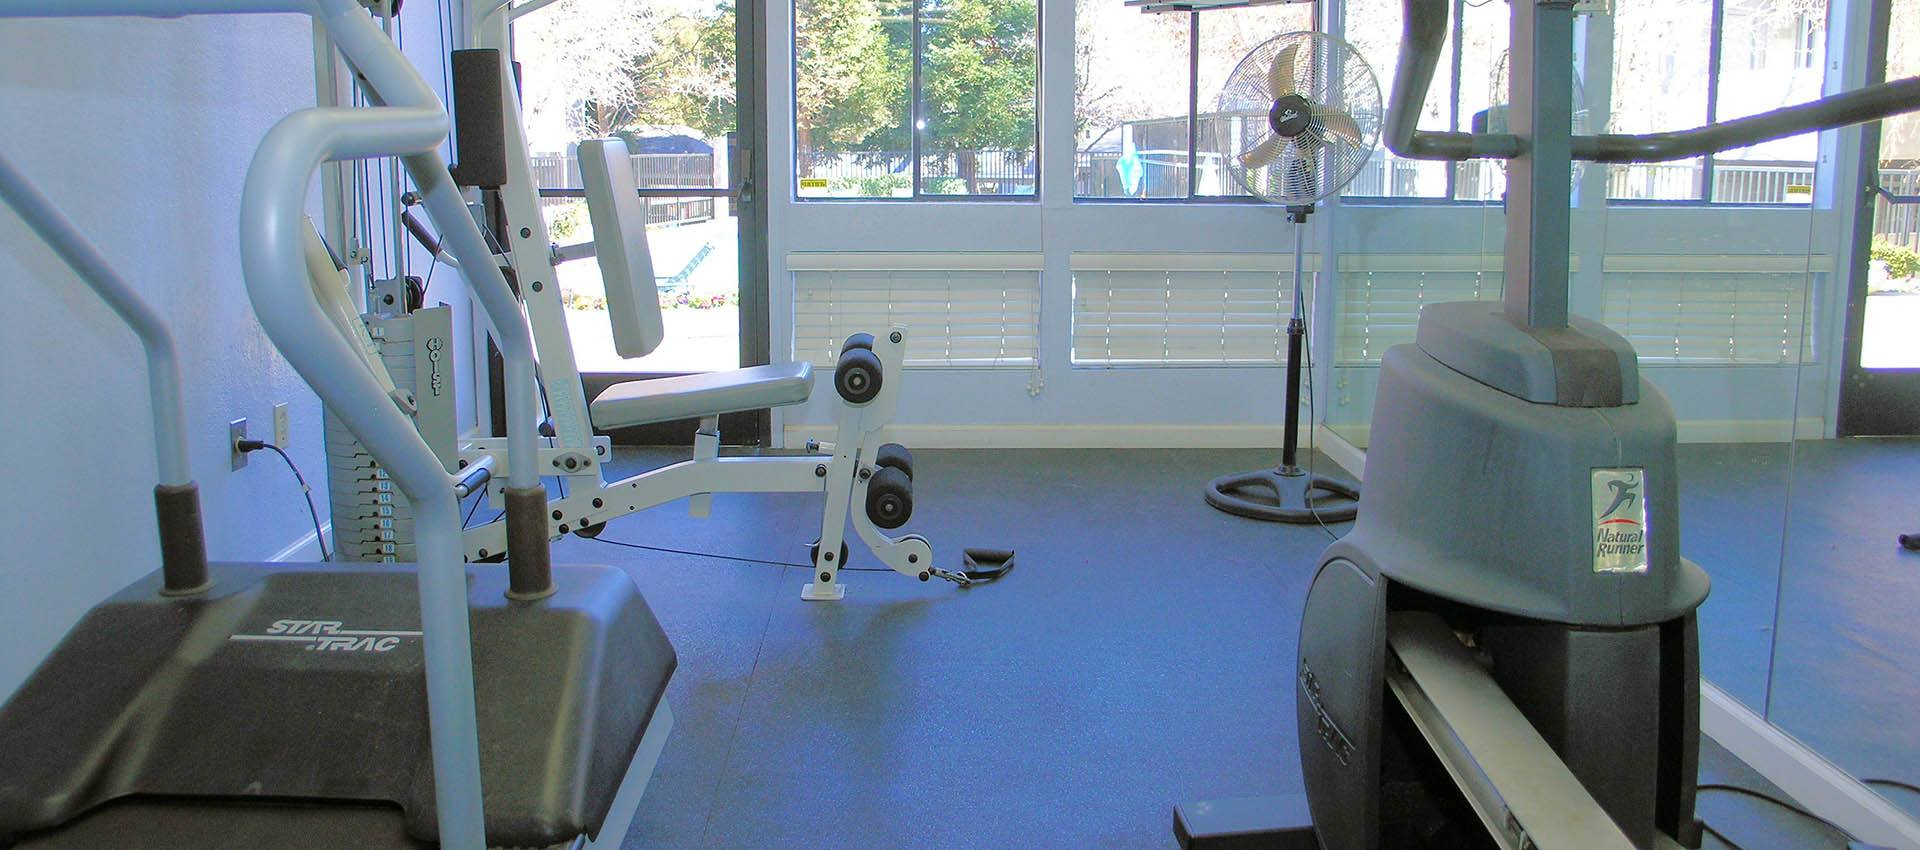 Cardio Equipment In Fitness Center at Plum Tree Apartment Homes in Martinez, CA